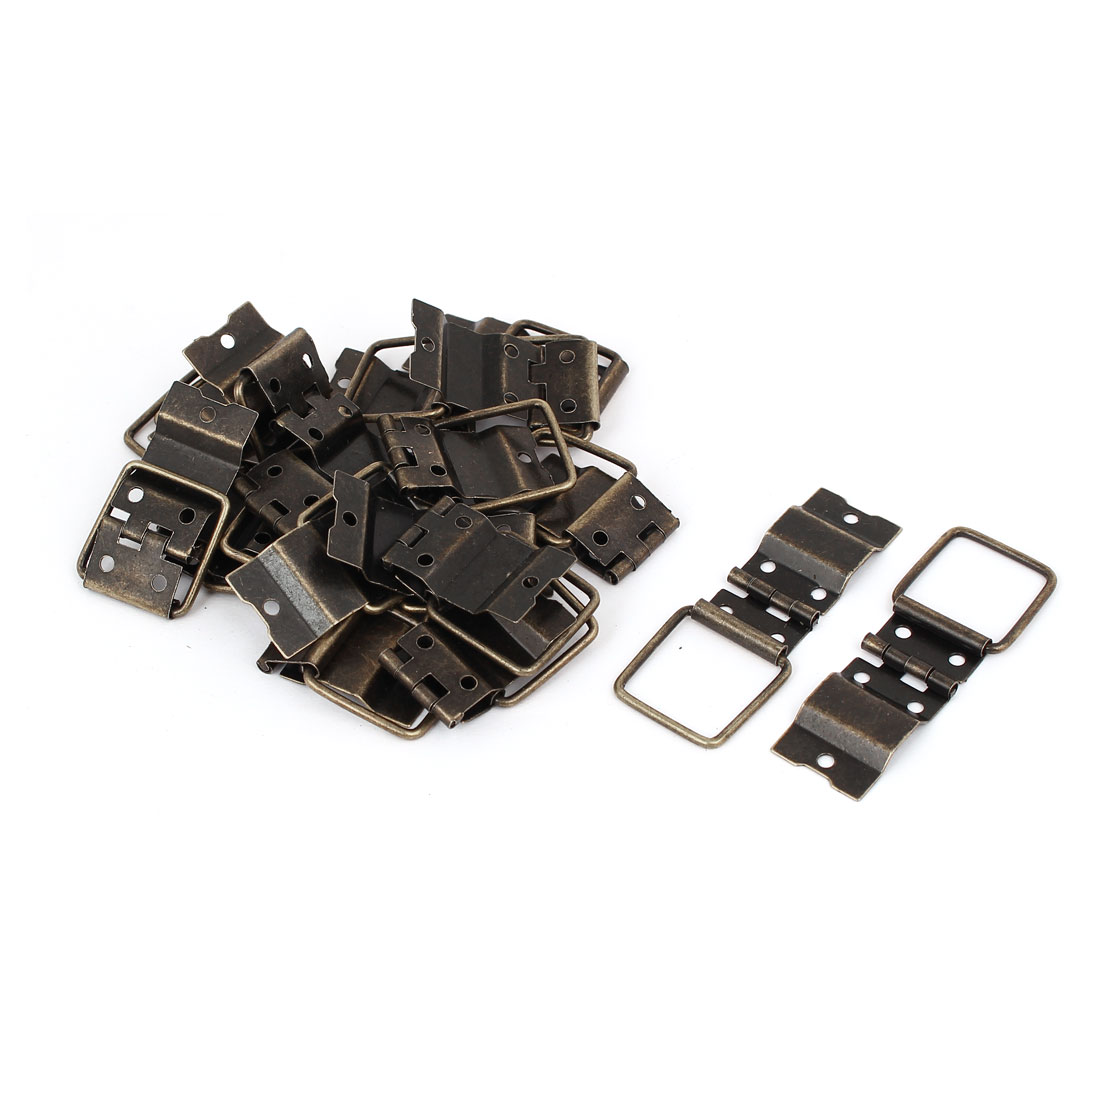 Box Case Retro Style Positioning Support Hinges Bronze Tone 37.5mmx16.5mm 20pcs